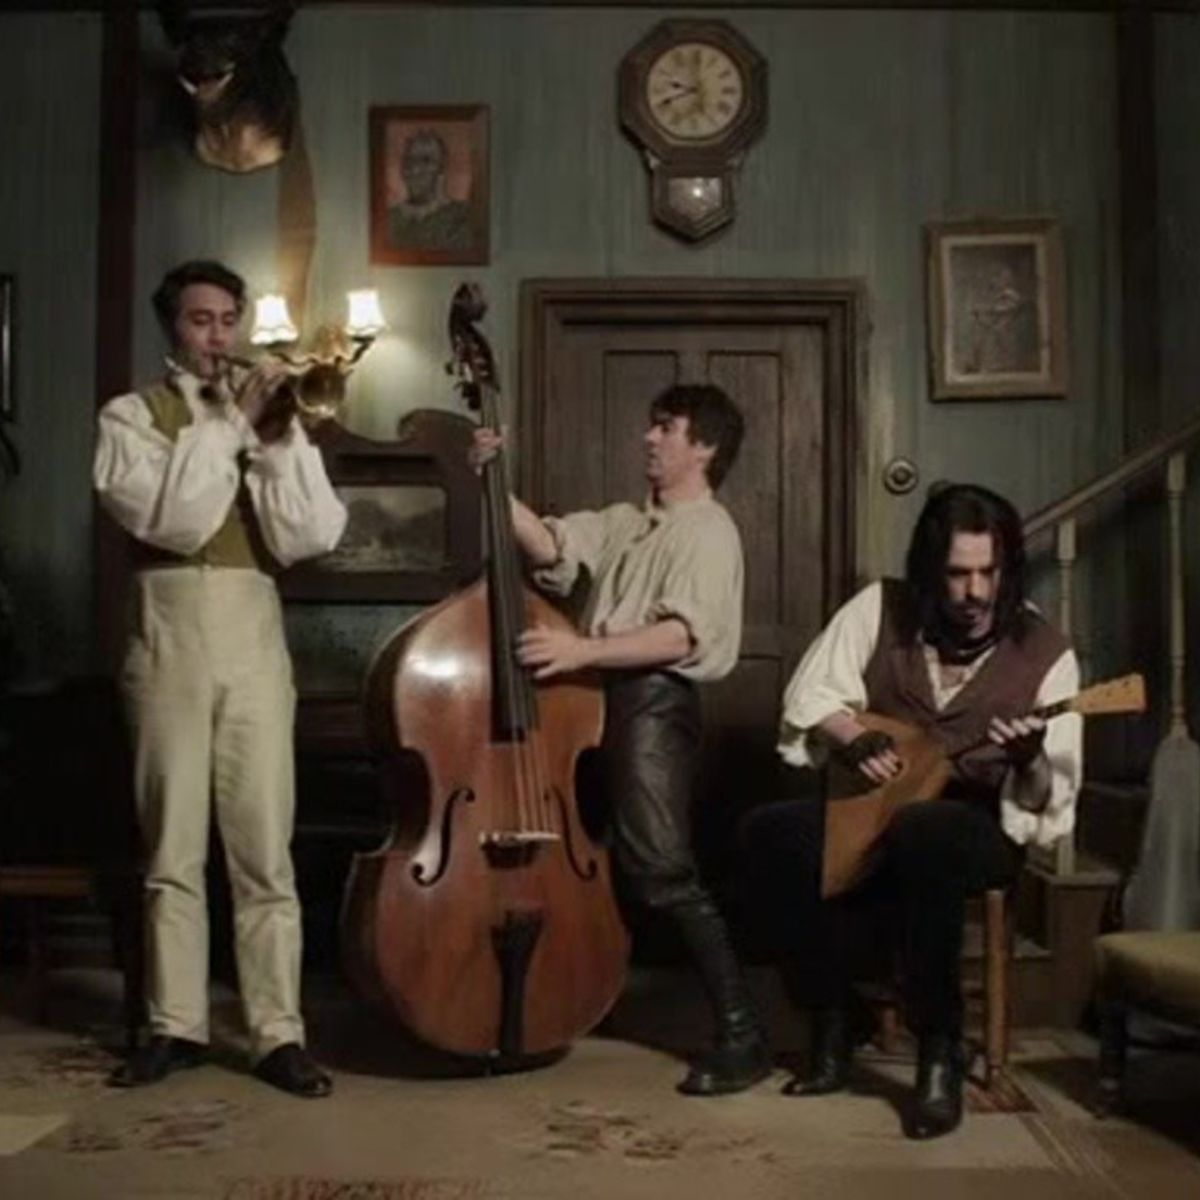 Jemaine Clement, Taika Waititi On 'What We Do In The Shadows' Origins